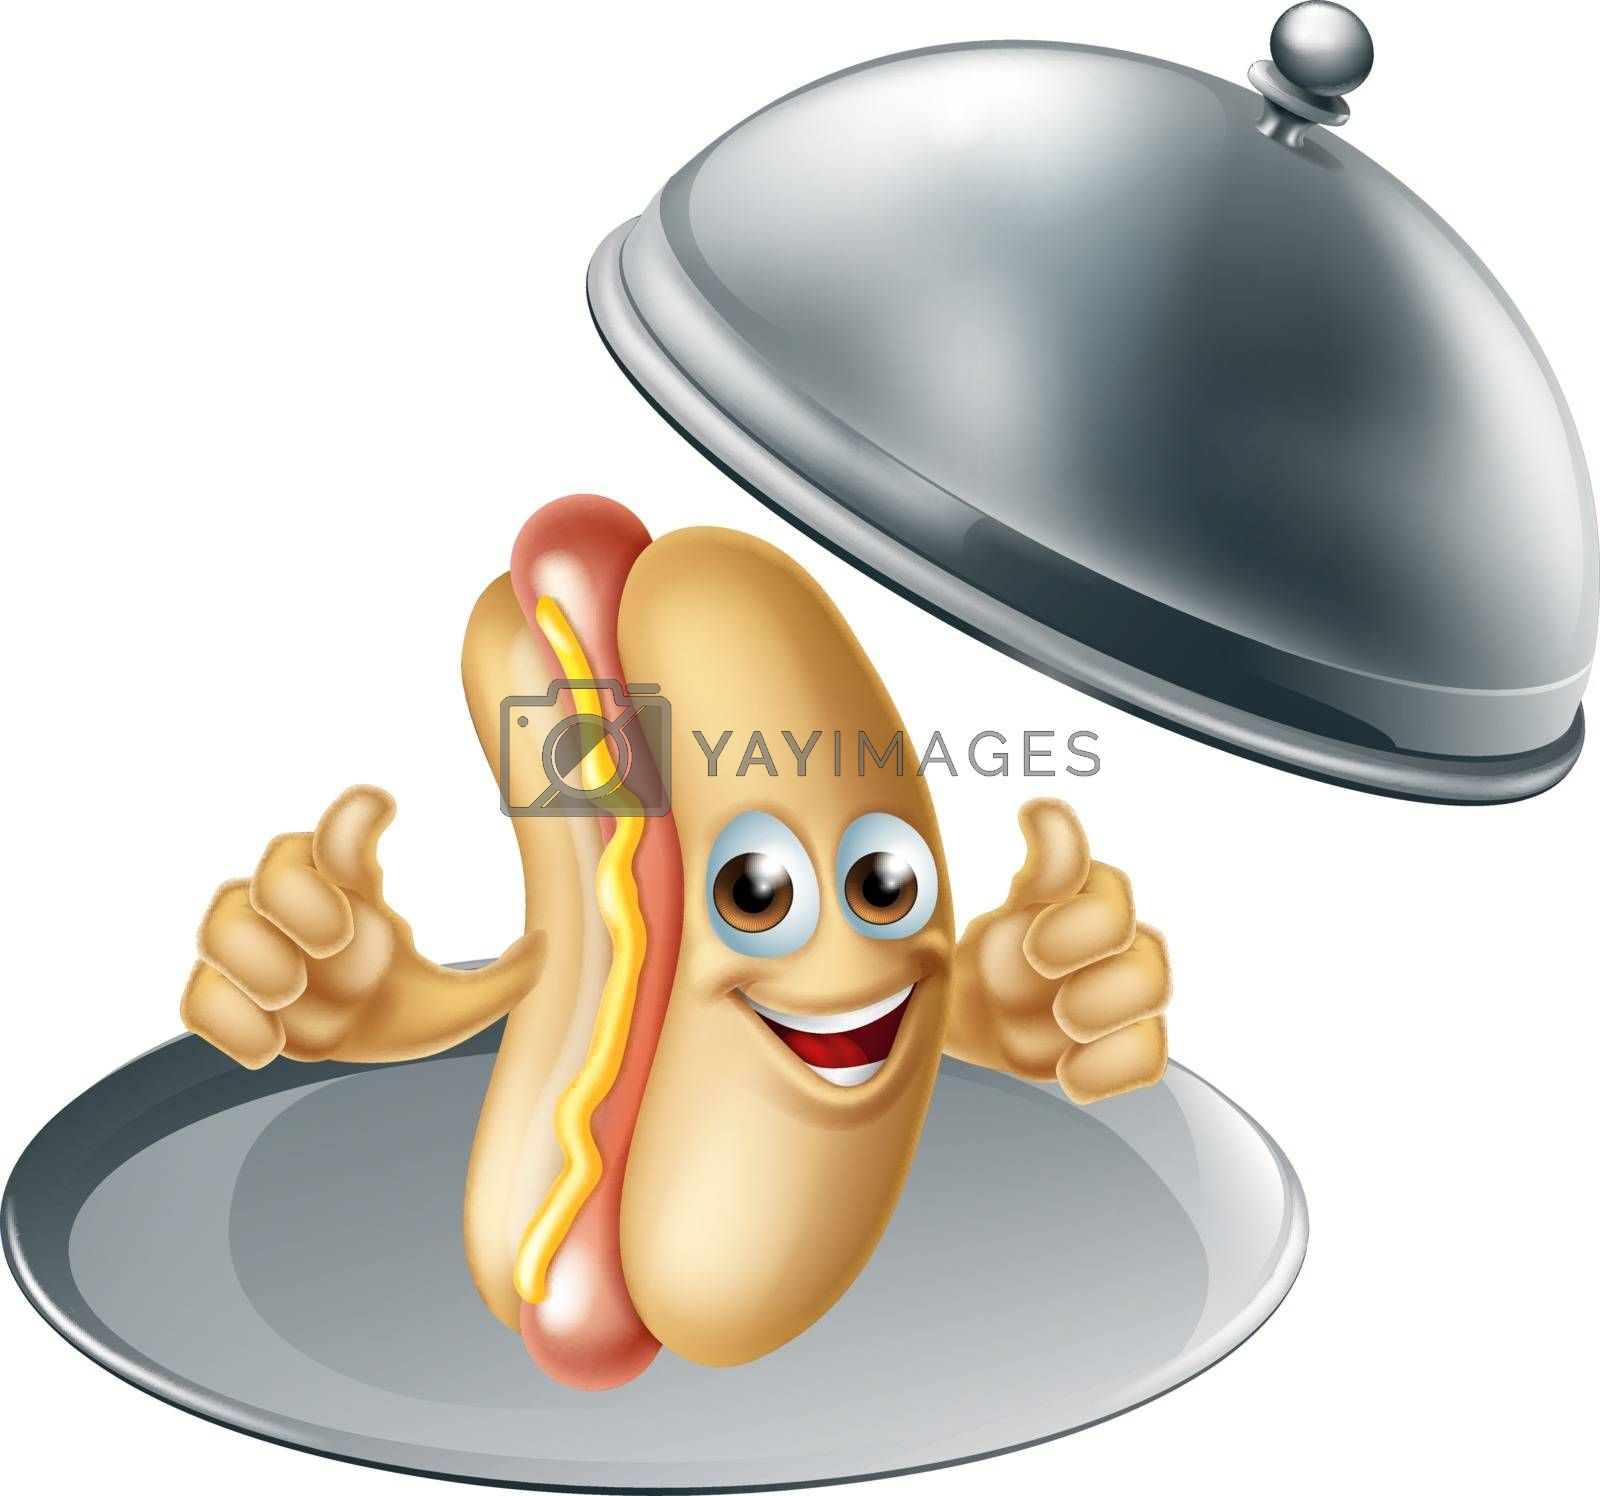 A hot dog sausage cartoon character mascot on a silver platter serving tray giving a thumbs up